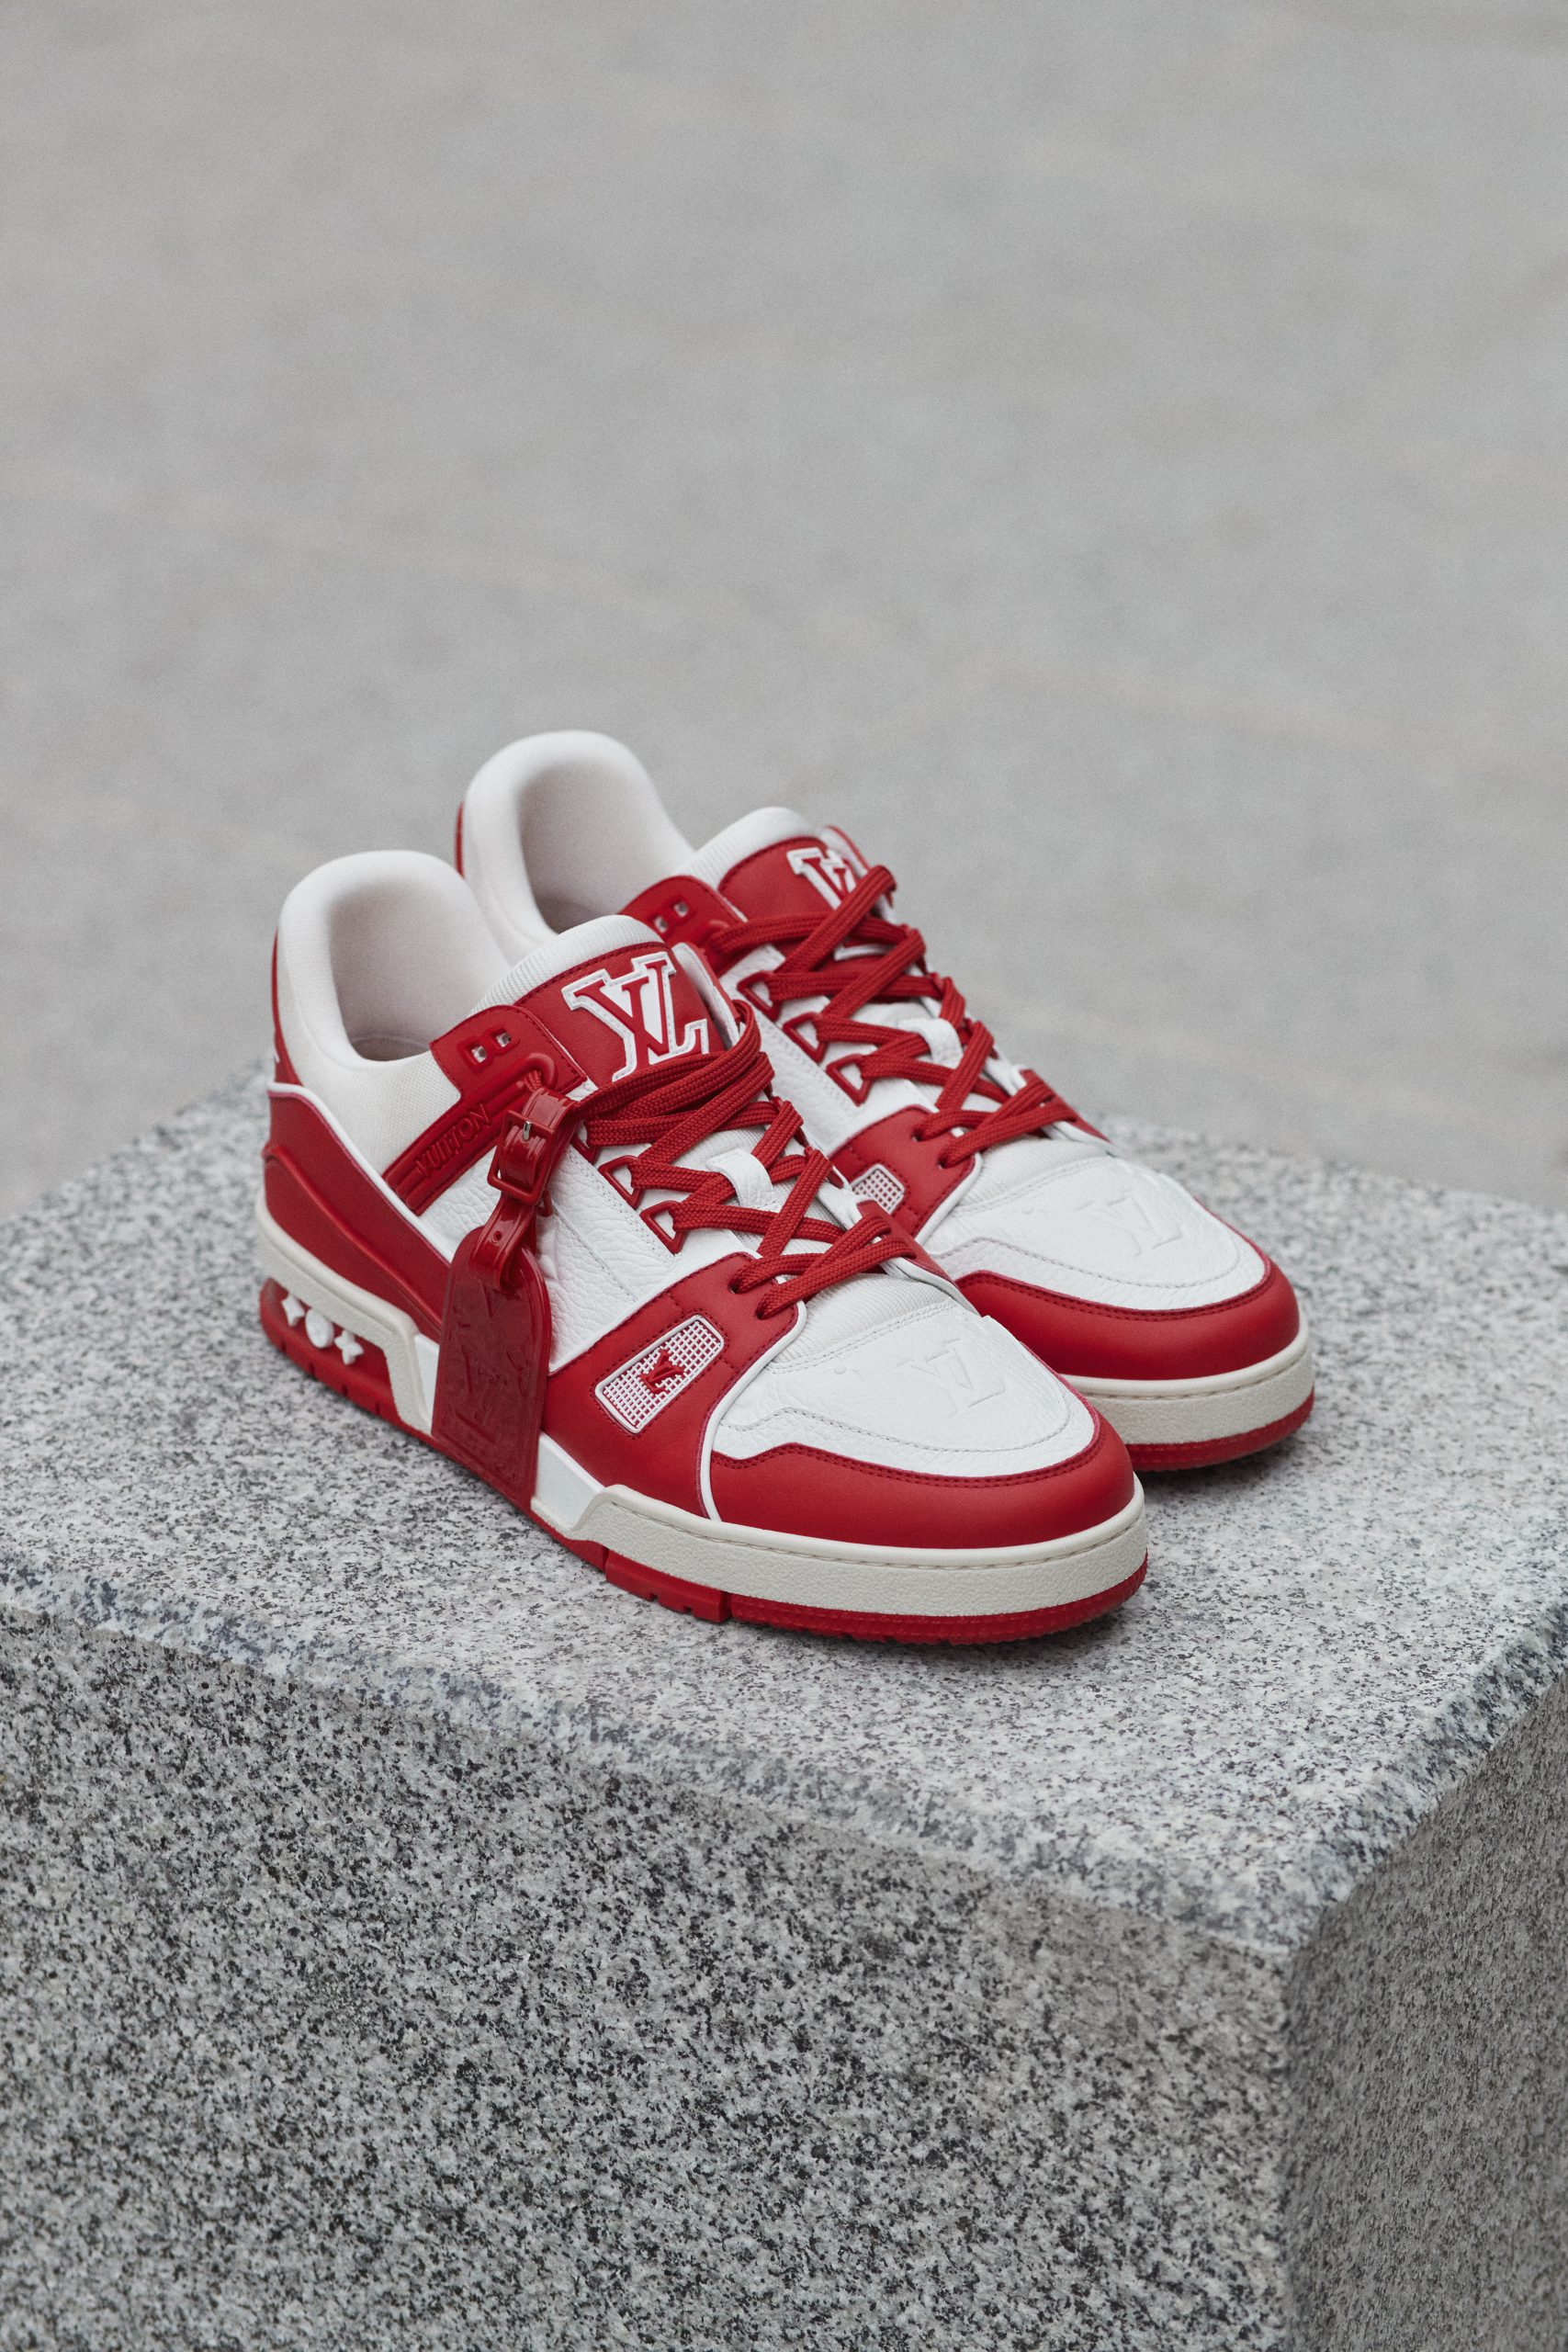 Louis Vuitton X (Red) Launch New Trainer In The Fight Against Aids